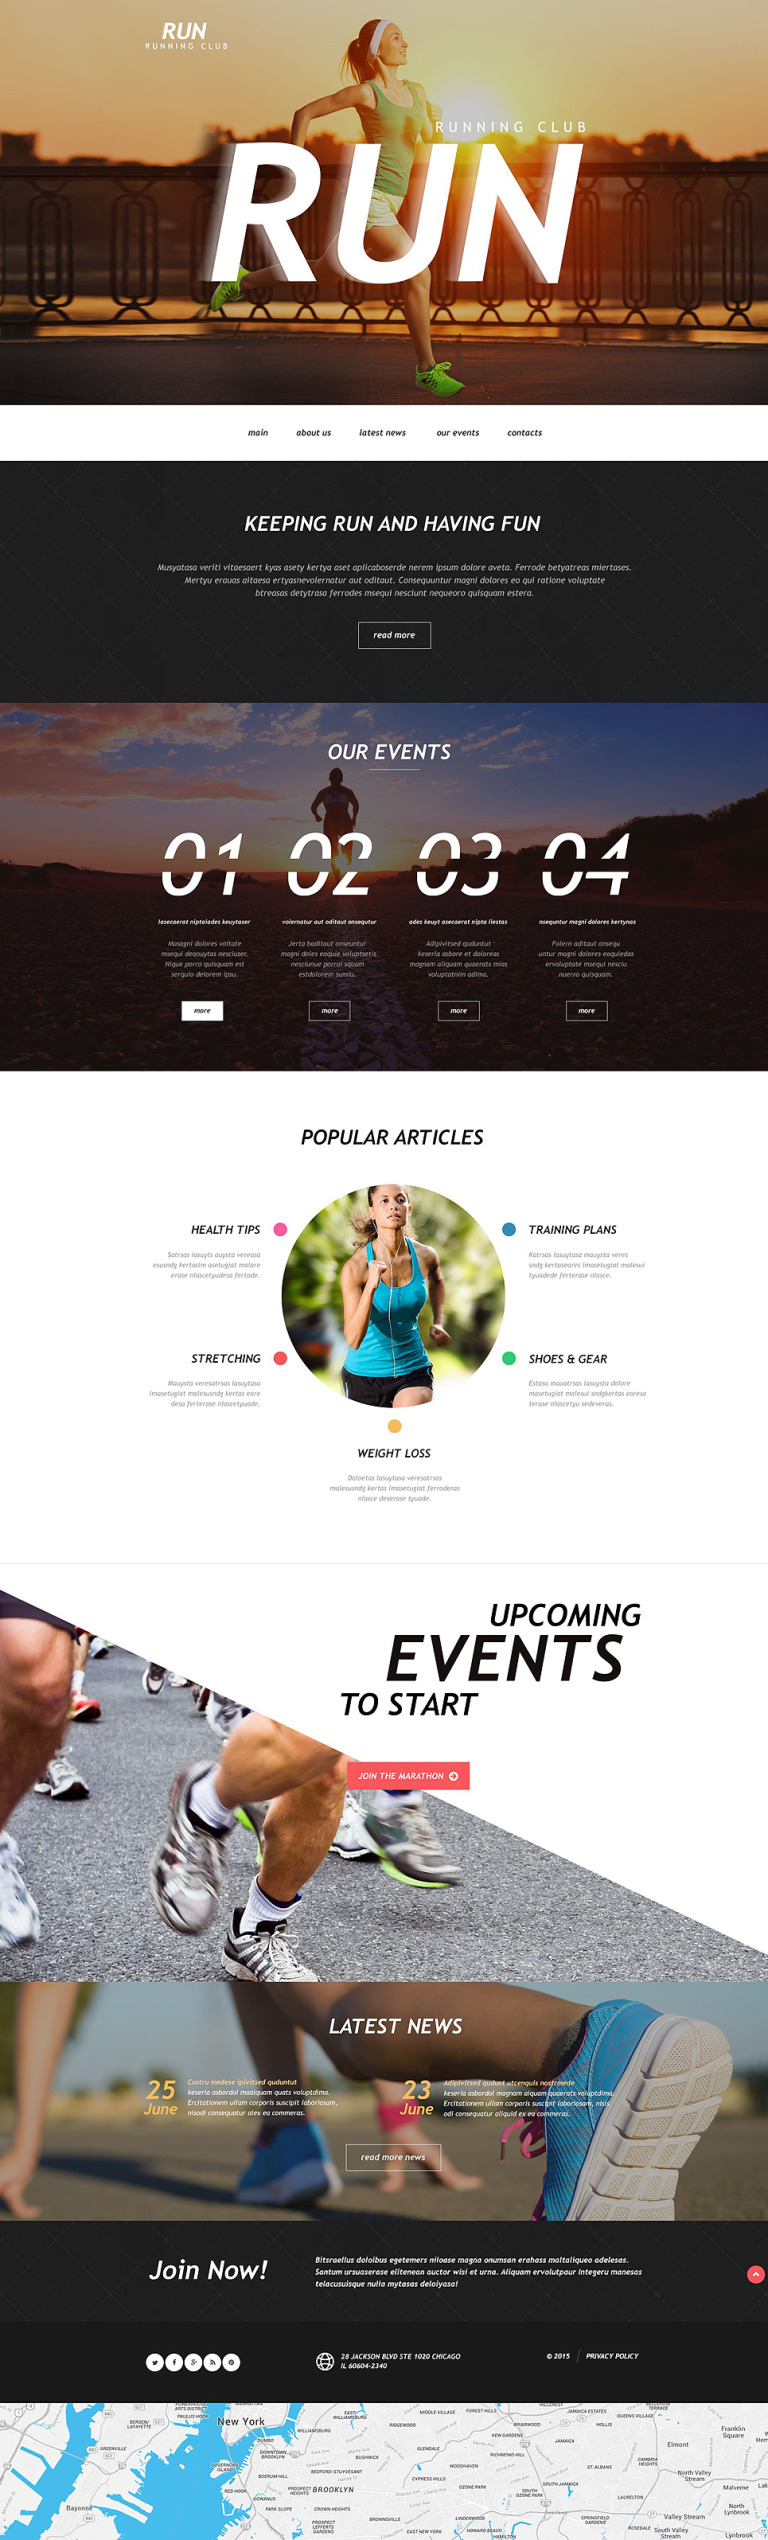 Running Muse Template New Screenshots BIG